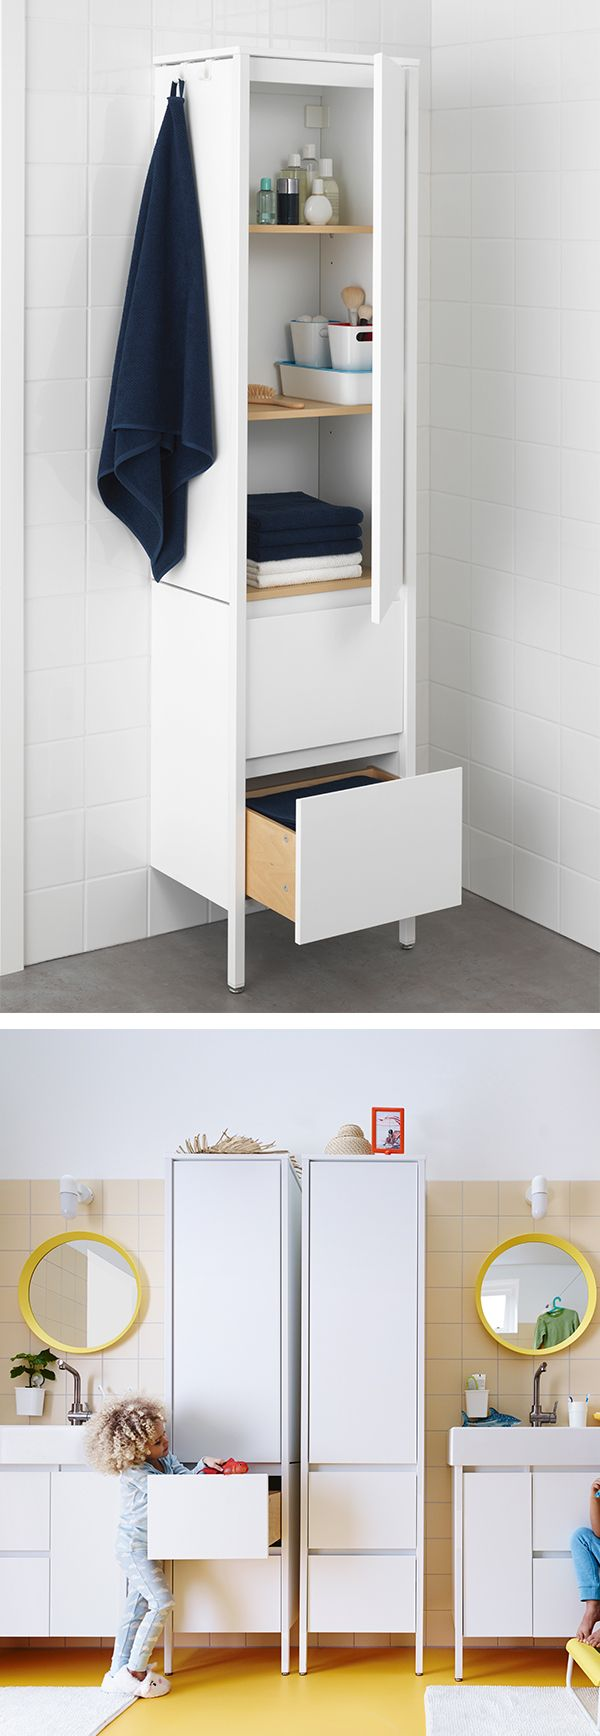 283 best images about bathrooms on pinterest for Extra small bathroom ideas